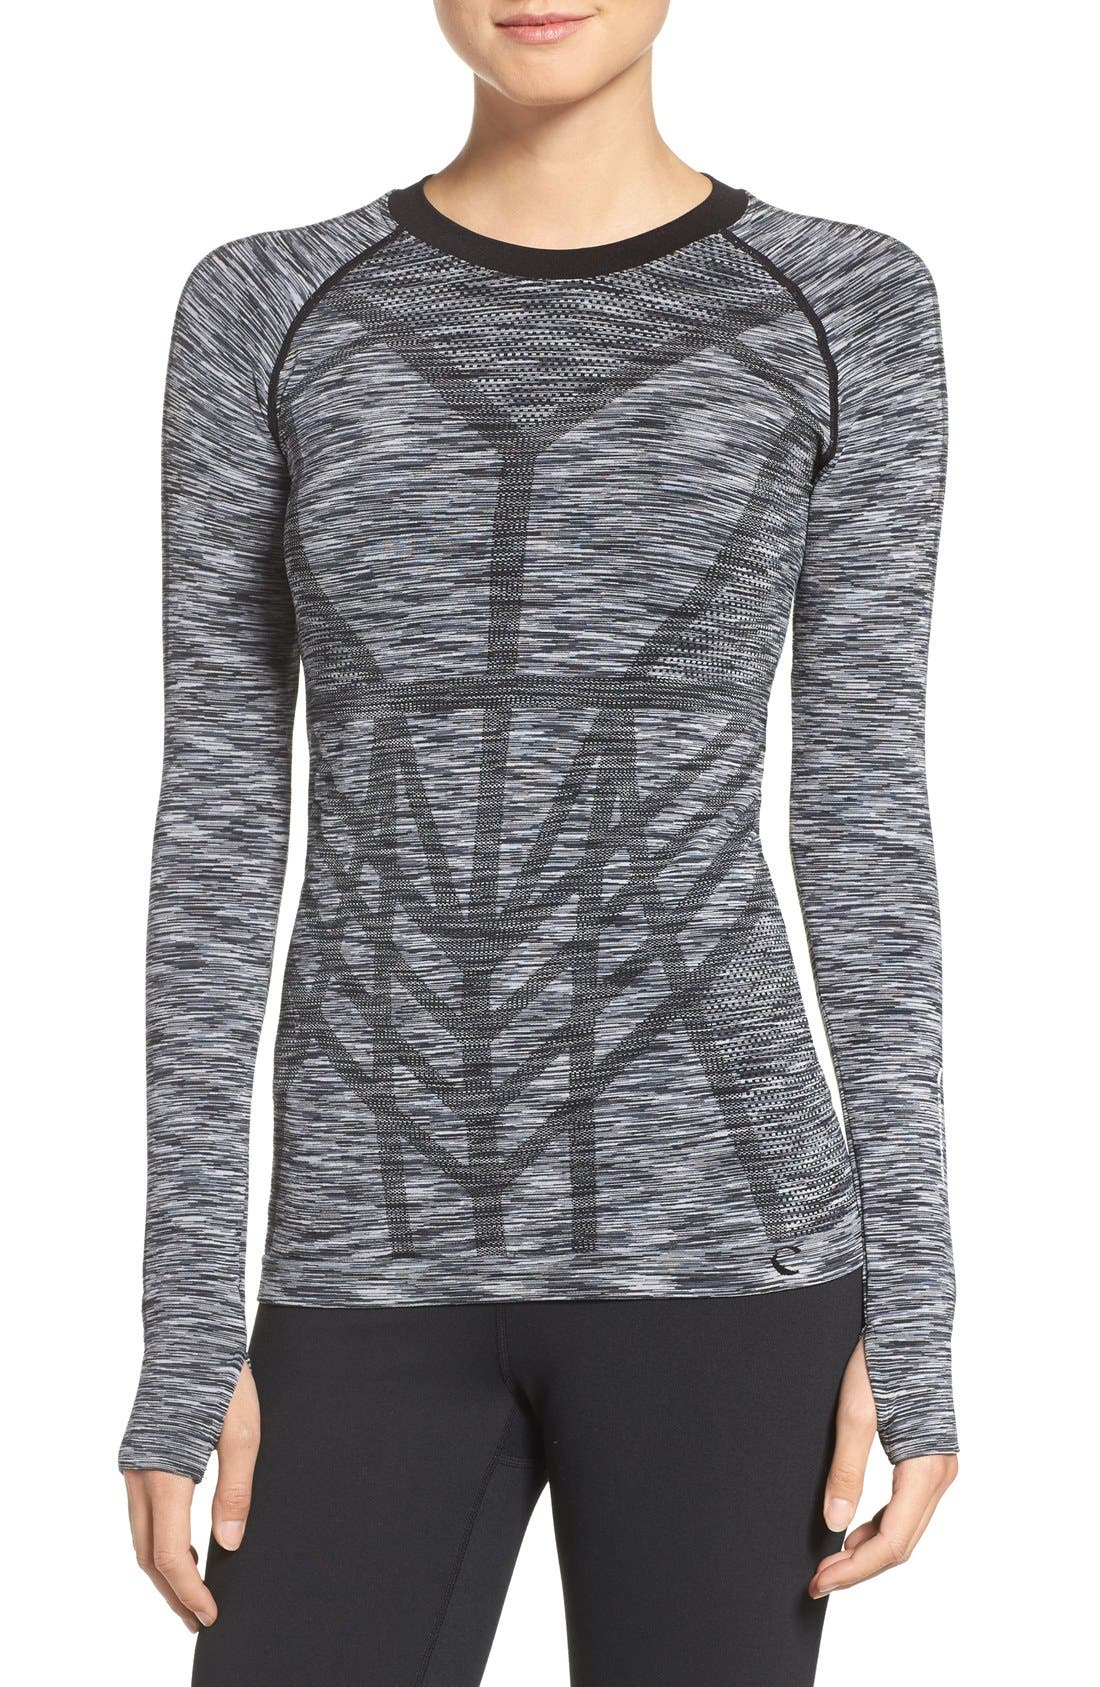 Rock Your Core Tee,                         Main,                         color, 001